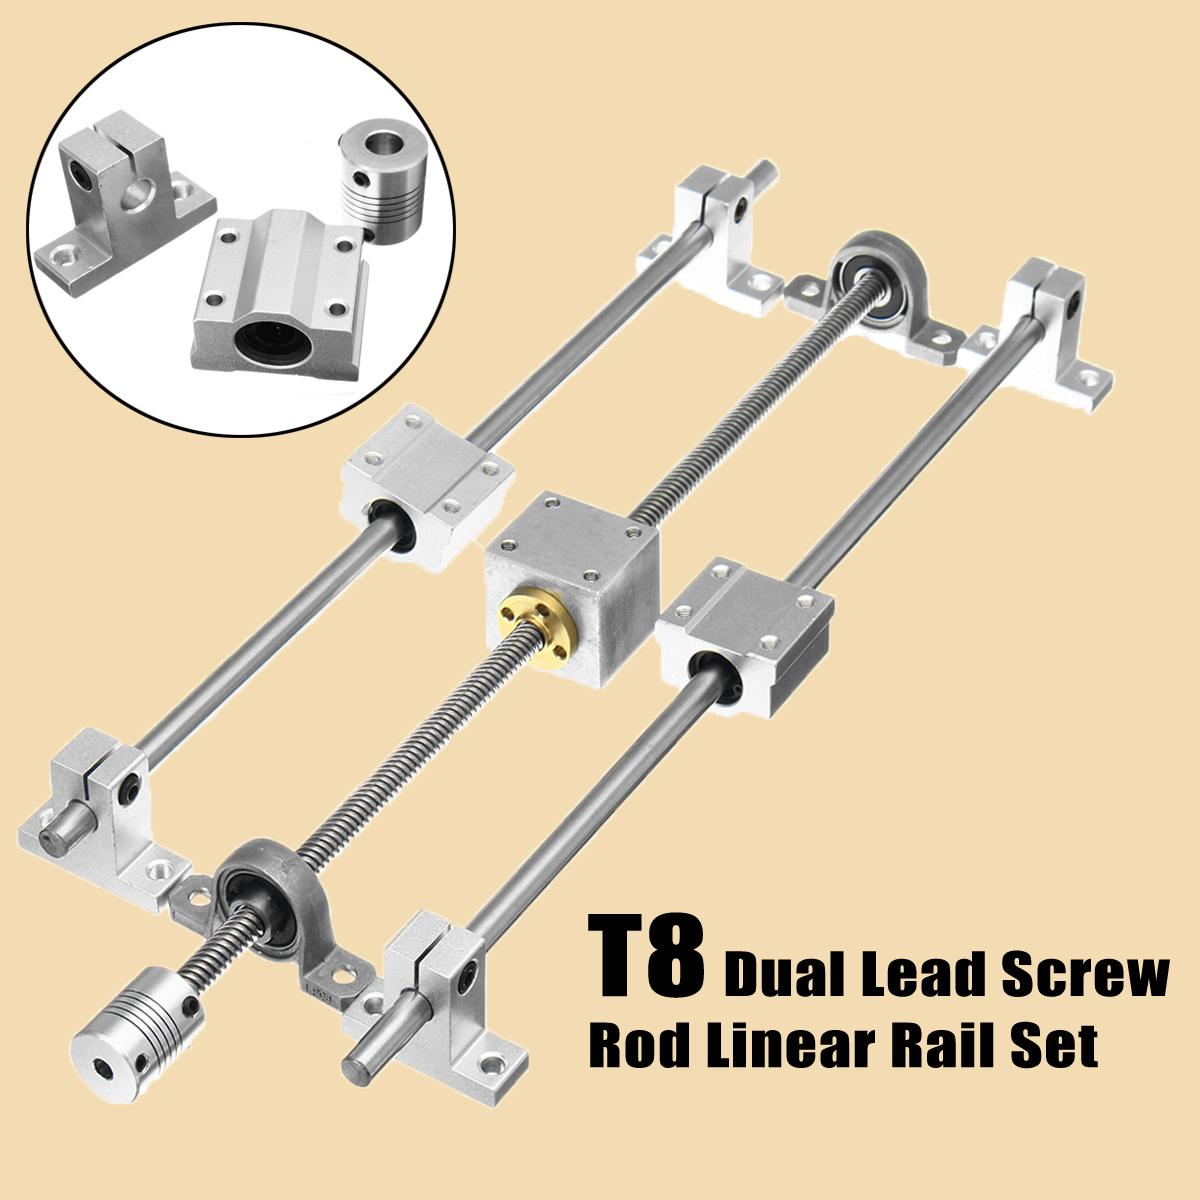 Horizontal Shaft 350mm T8 Dual Rail Lead Screw Rod Linear Coupling Support Guide & Lead Screw RodSet